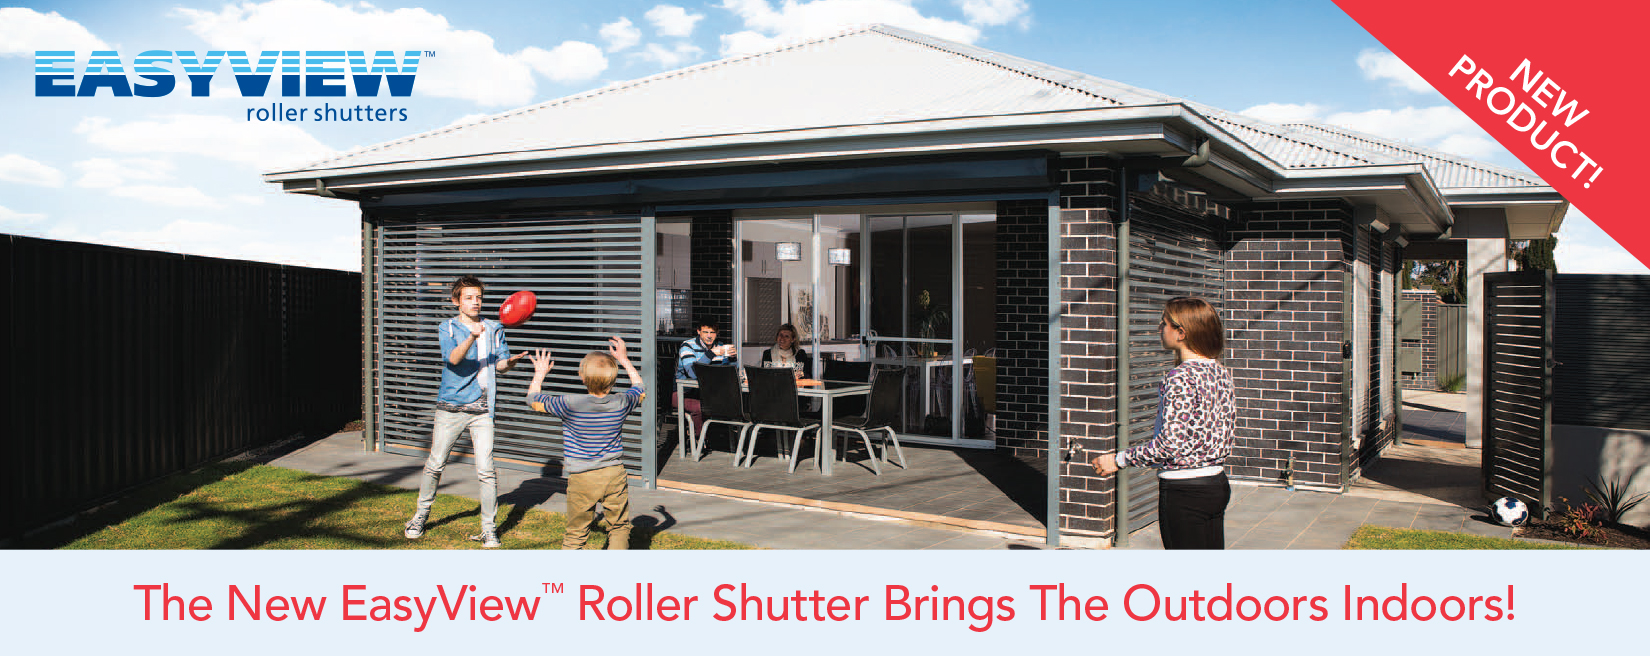 Cw Products Australian Made Roller Shutters Home Automation Rolling Shutter Motor Control Slider 4